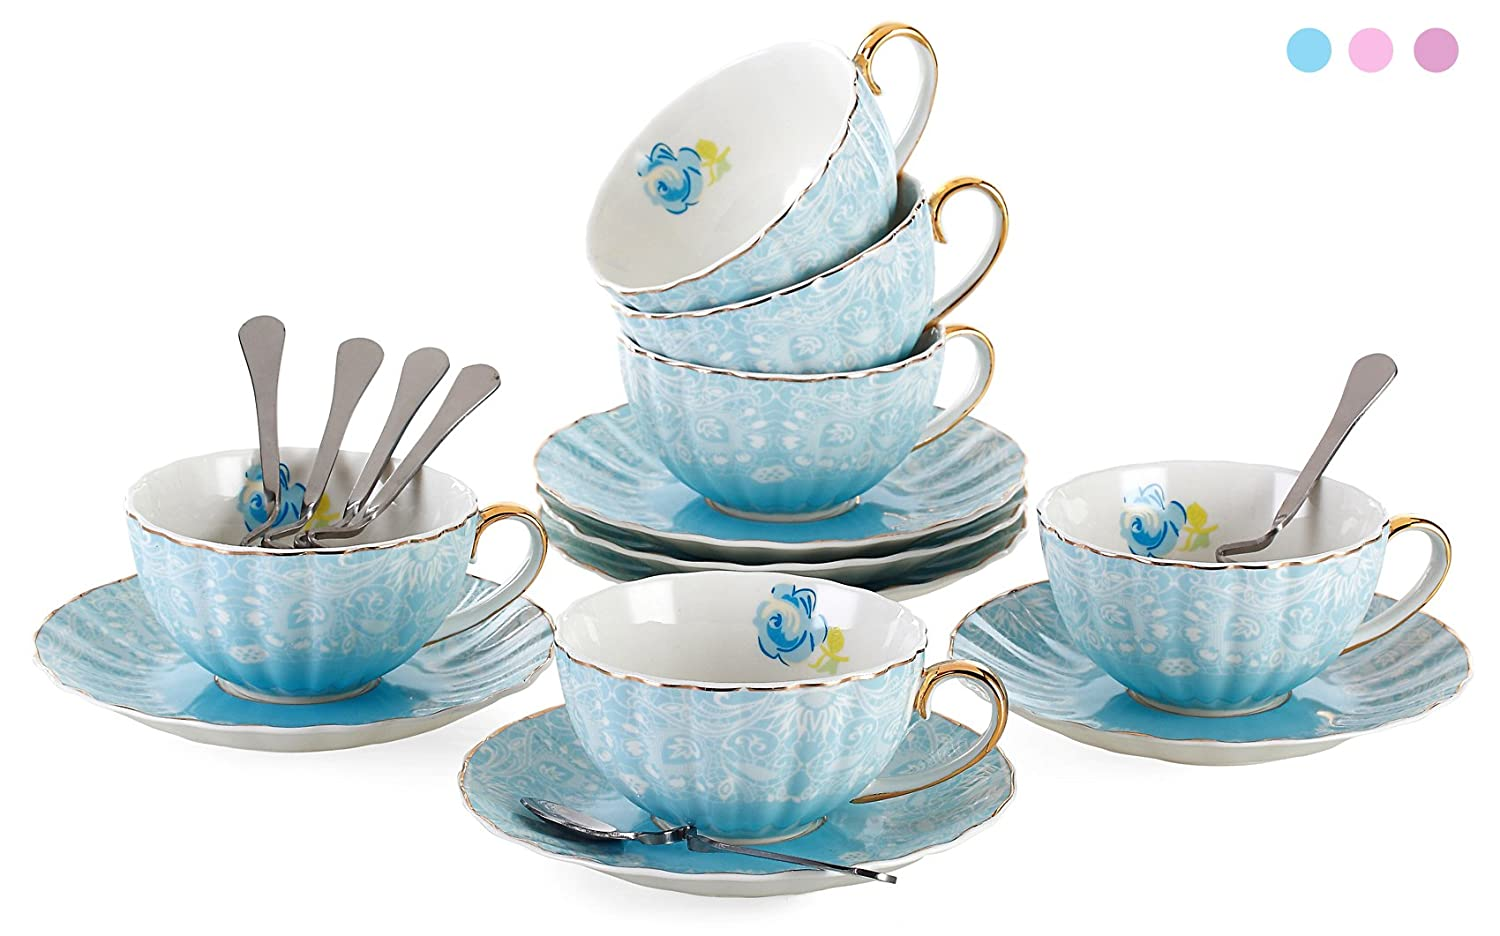 Jusalpha Porcelain Tea Cup and Saucer Coffee Cup Set with Saucer and Spoon FD-TCS04